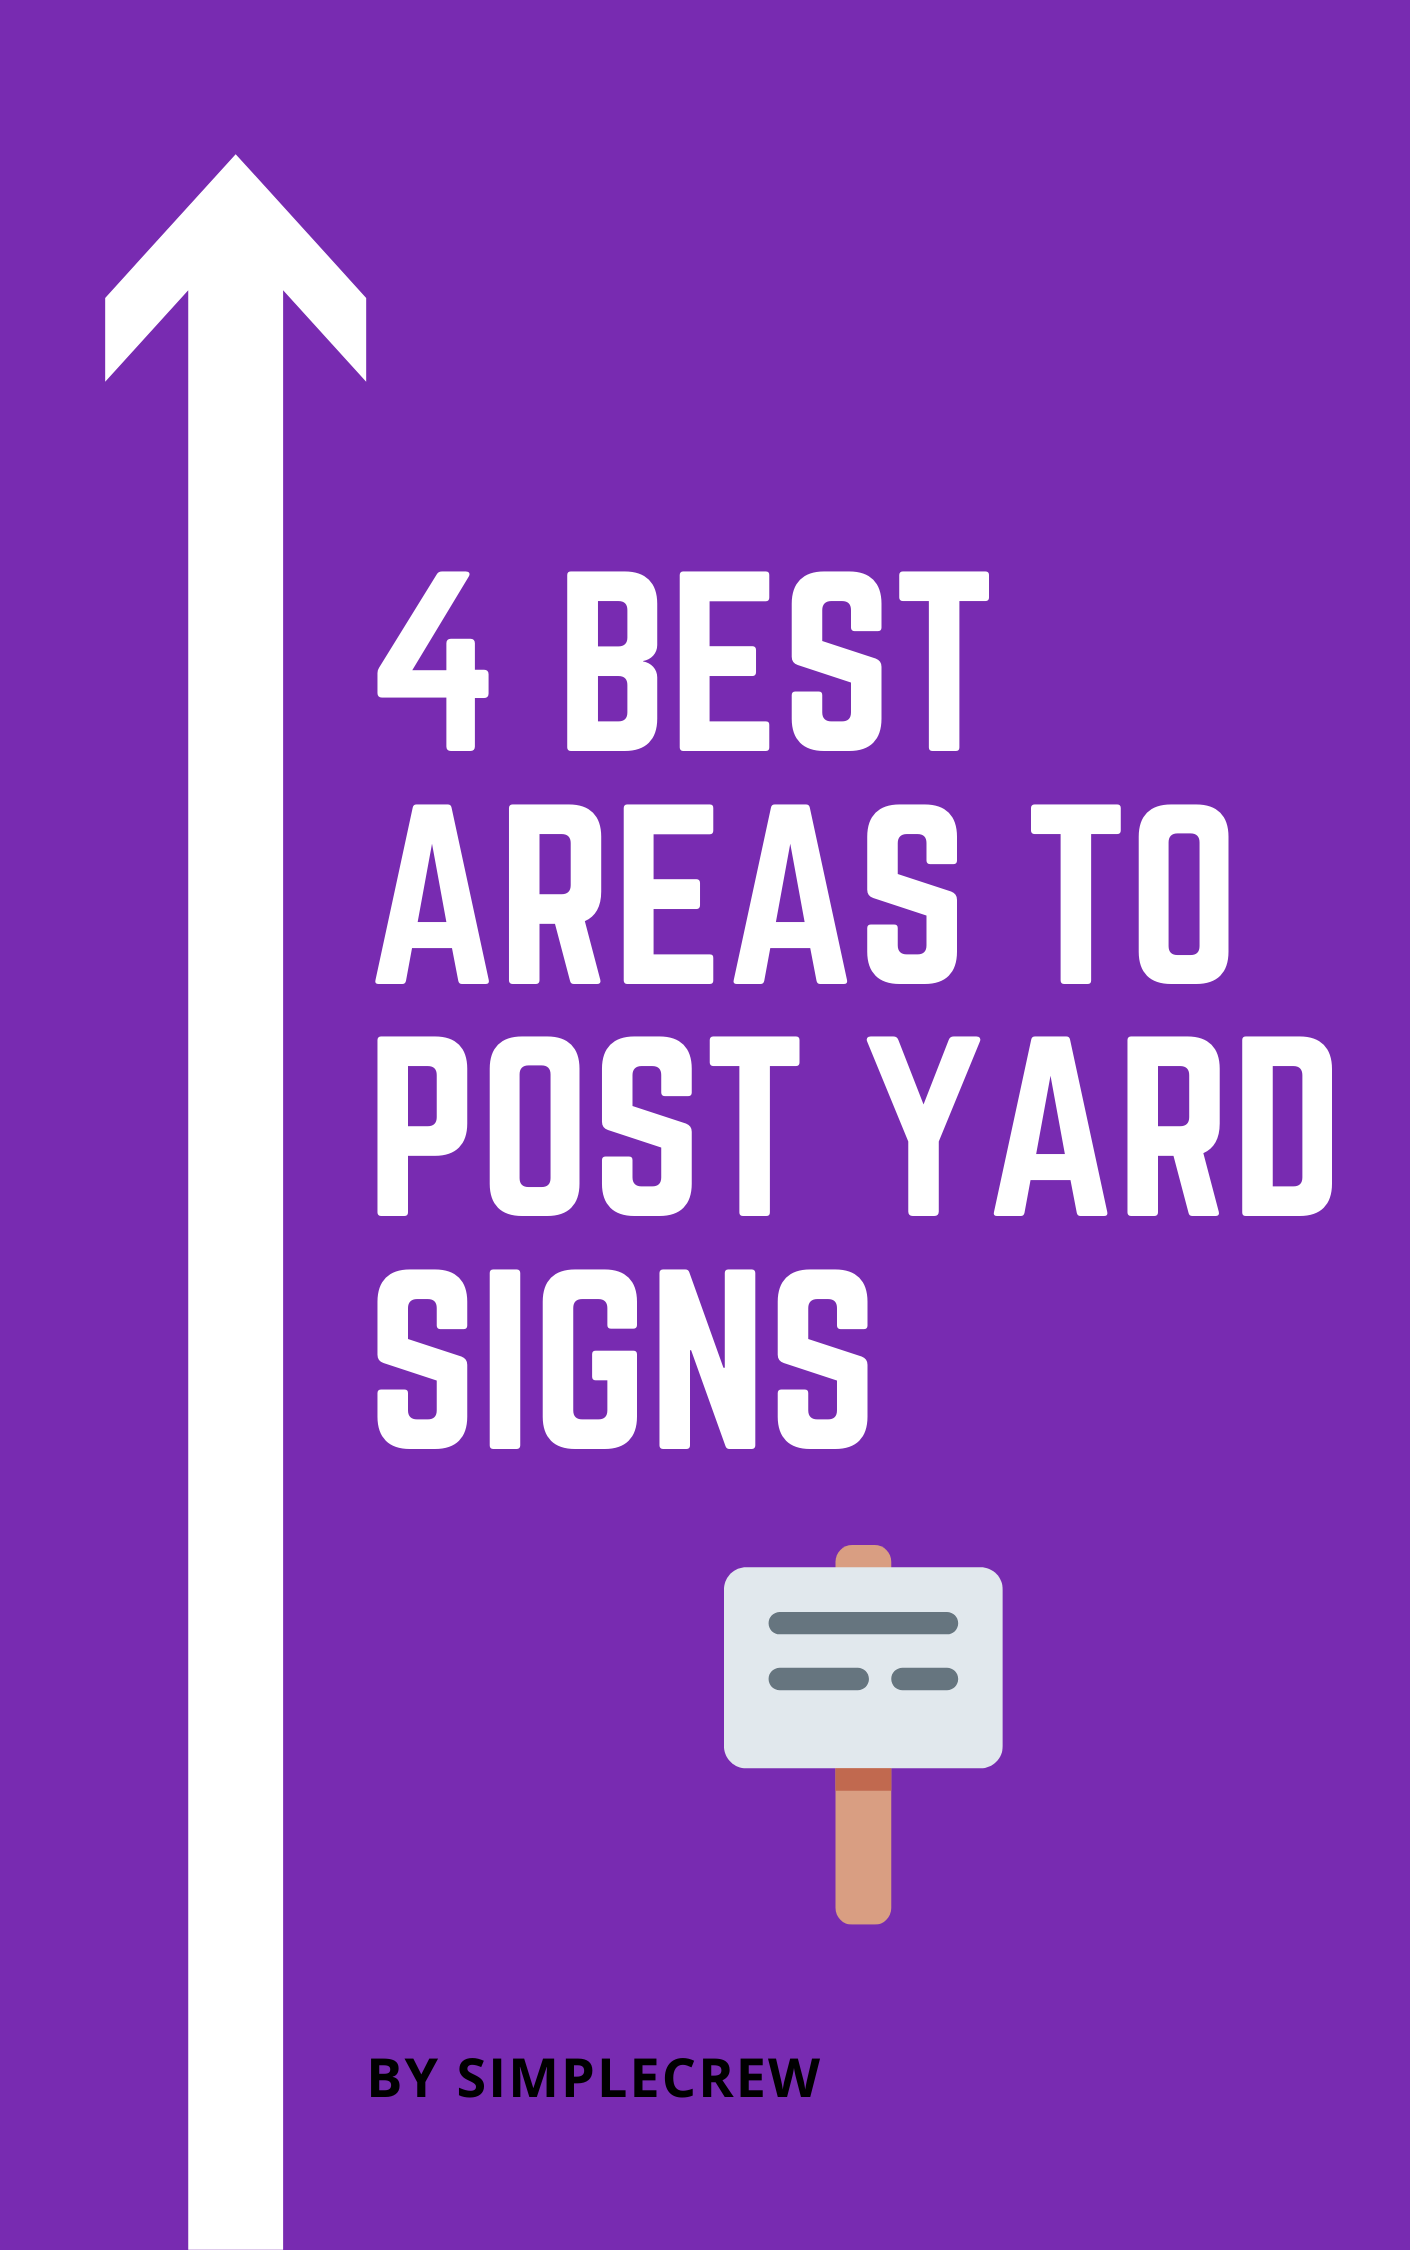 4 best areas to post yard signs cover